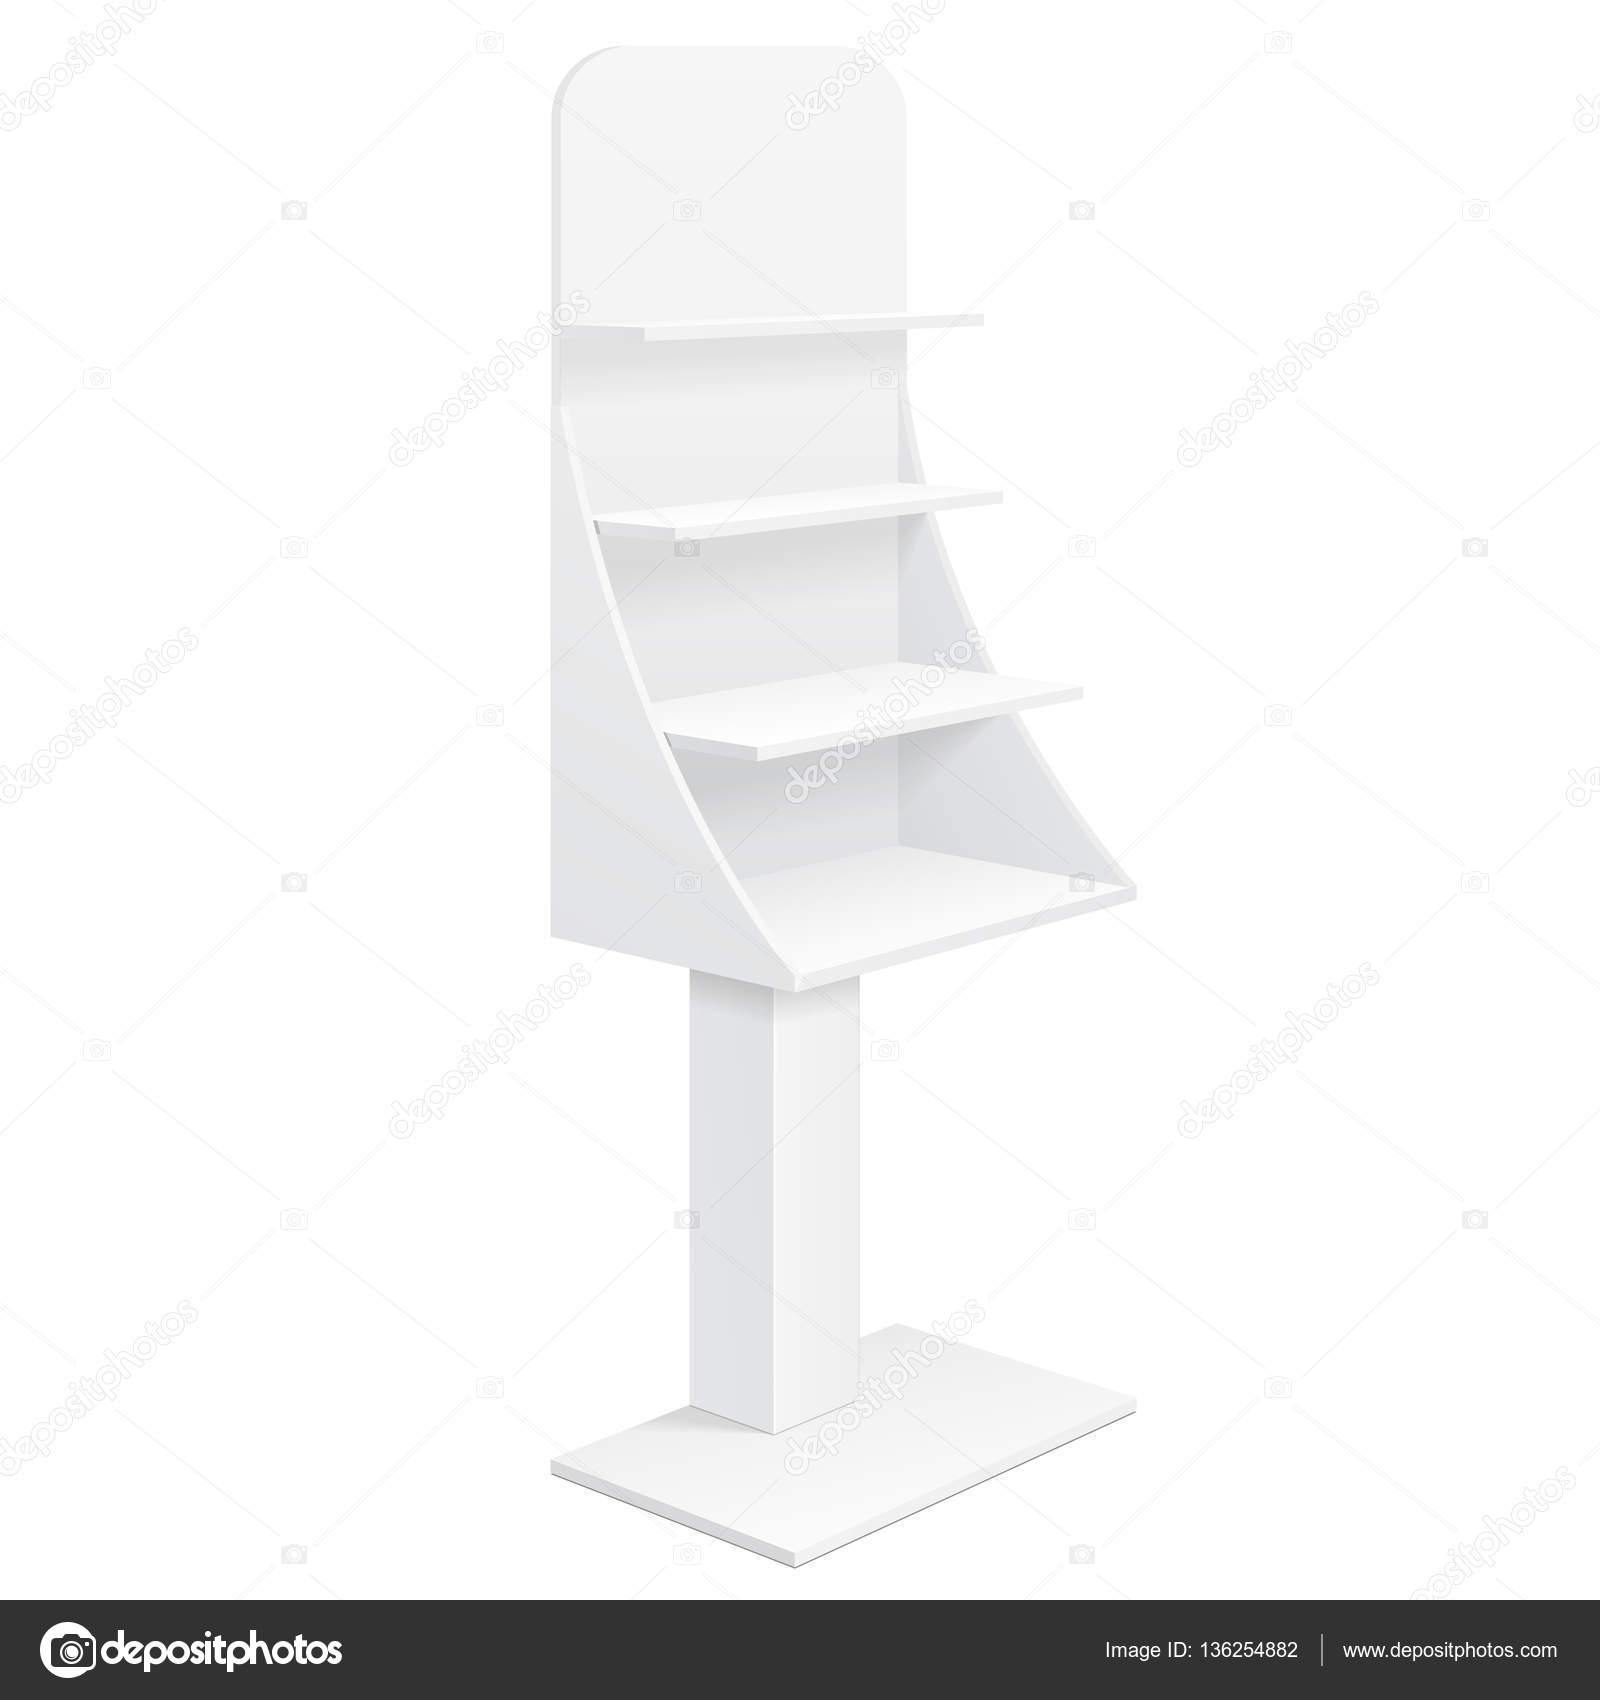 Tabletop Stand Cardboard Floor Display Rack For Supermarket Blank Empty Displays With Shelves S Mock